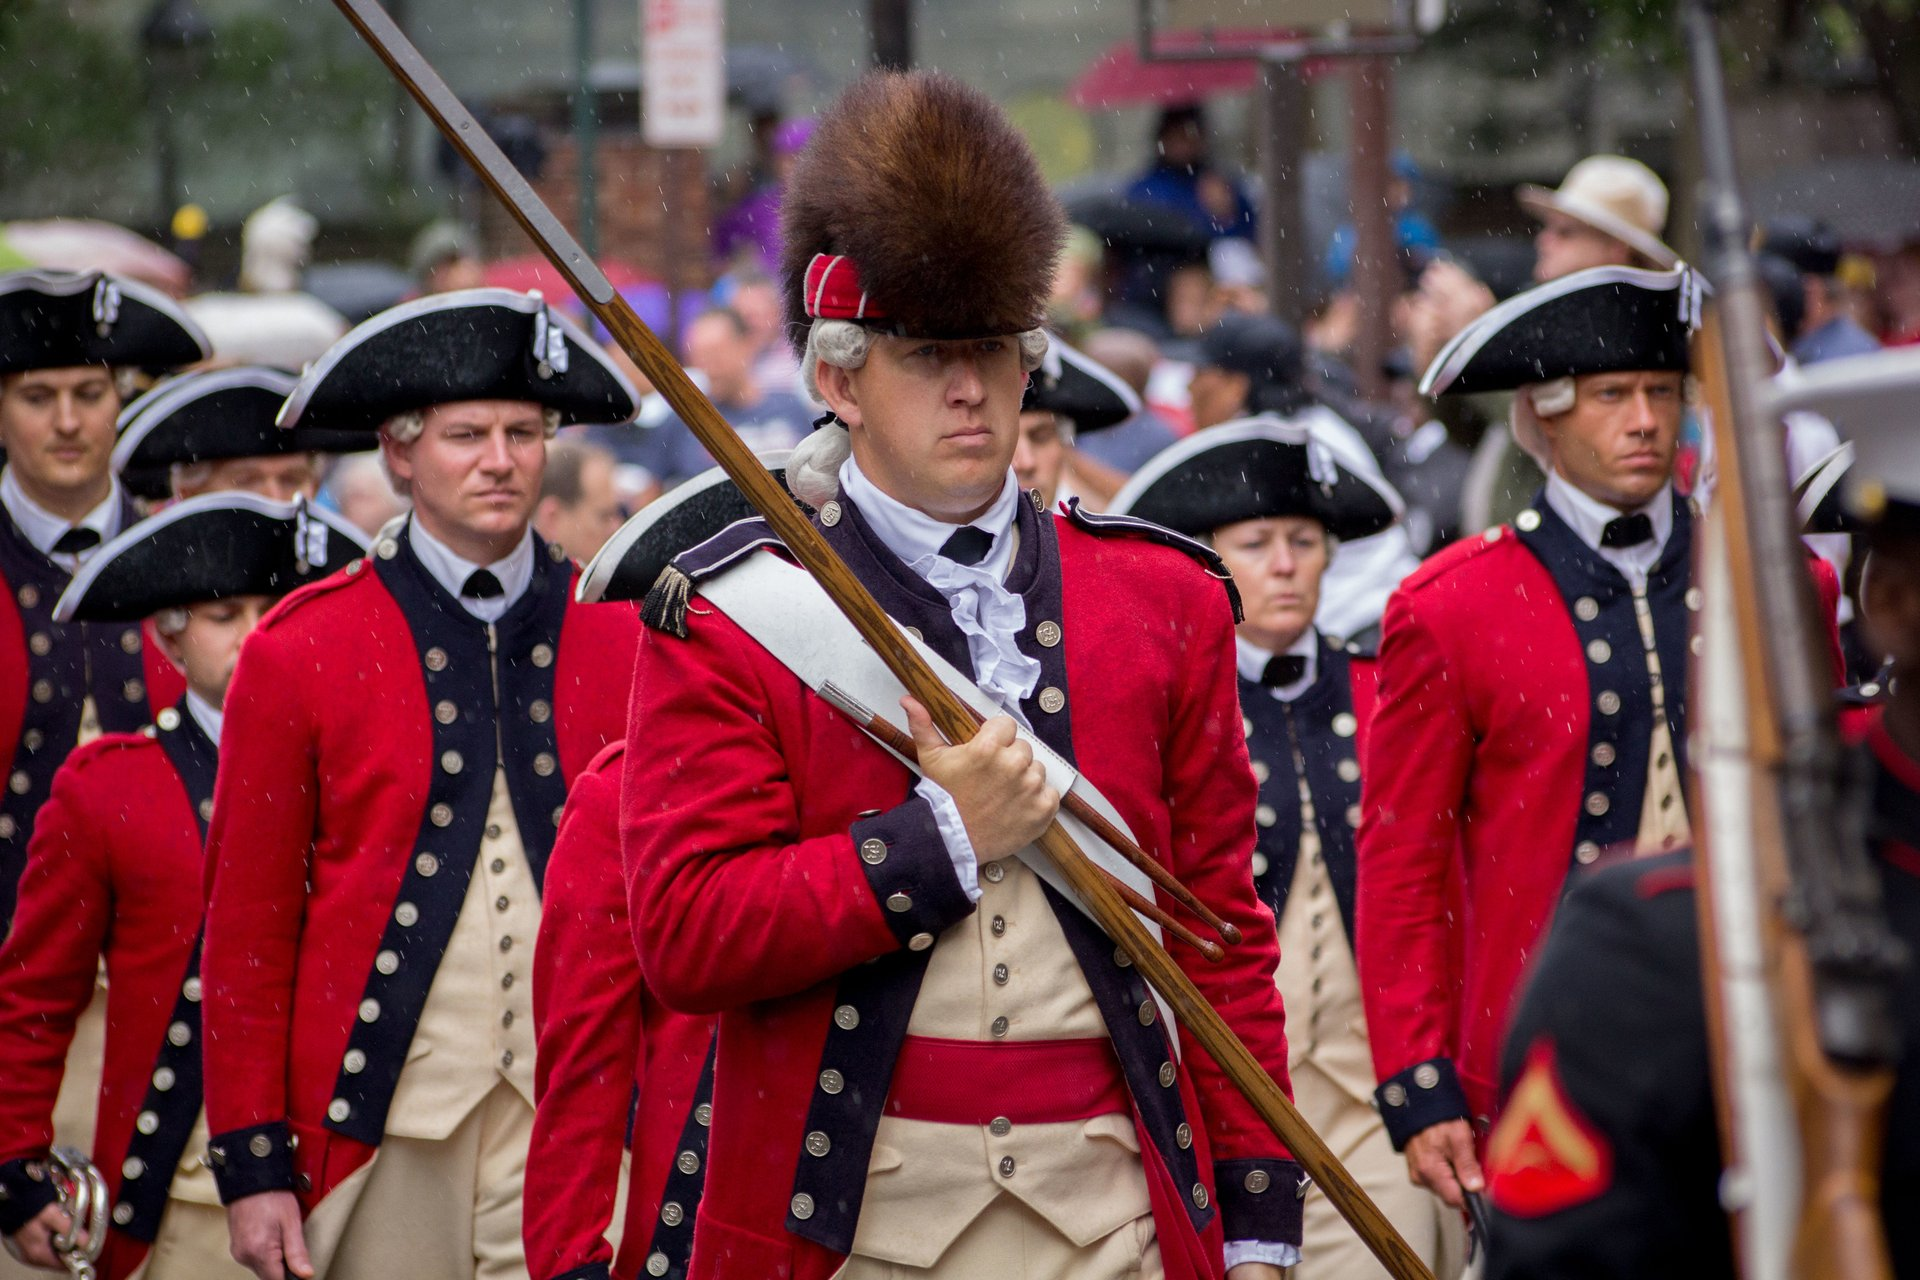 Celebration of Freedom Ceremony at Independence Hall 2020